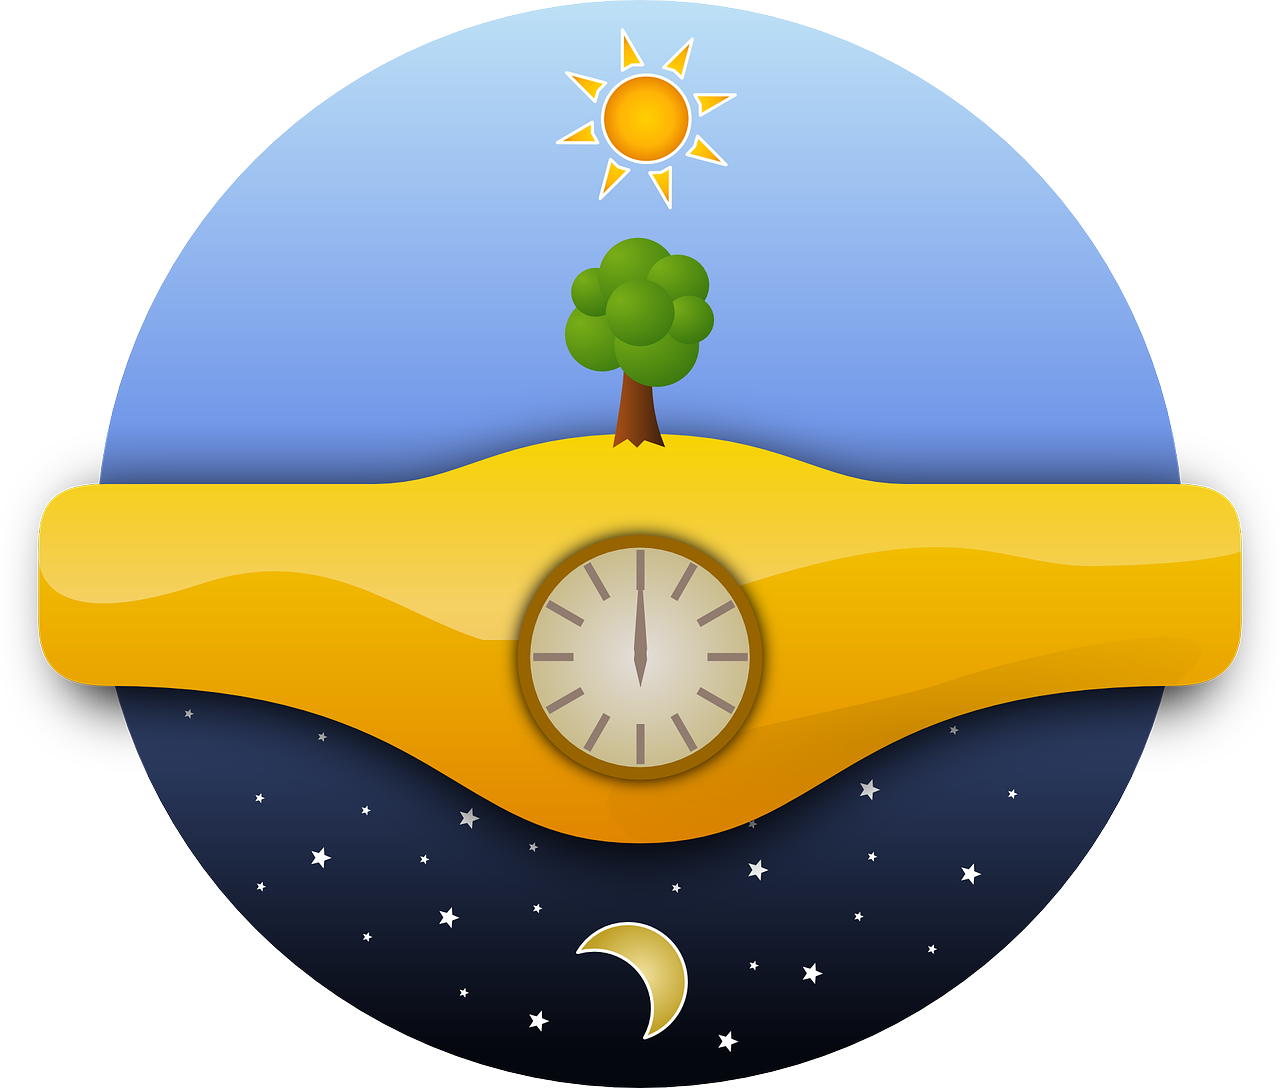 Sun clock clipart graphic transparent stock Two techniques for telling time without a watch - Outdoor Revival graphic transparent stock